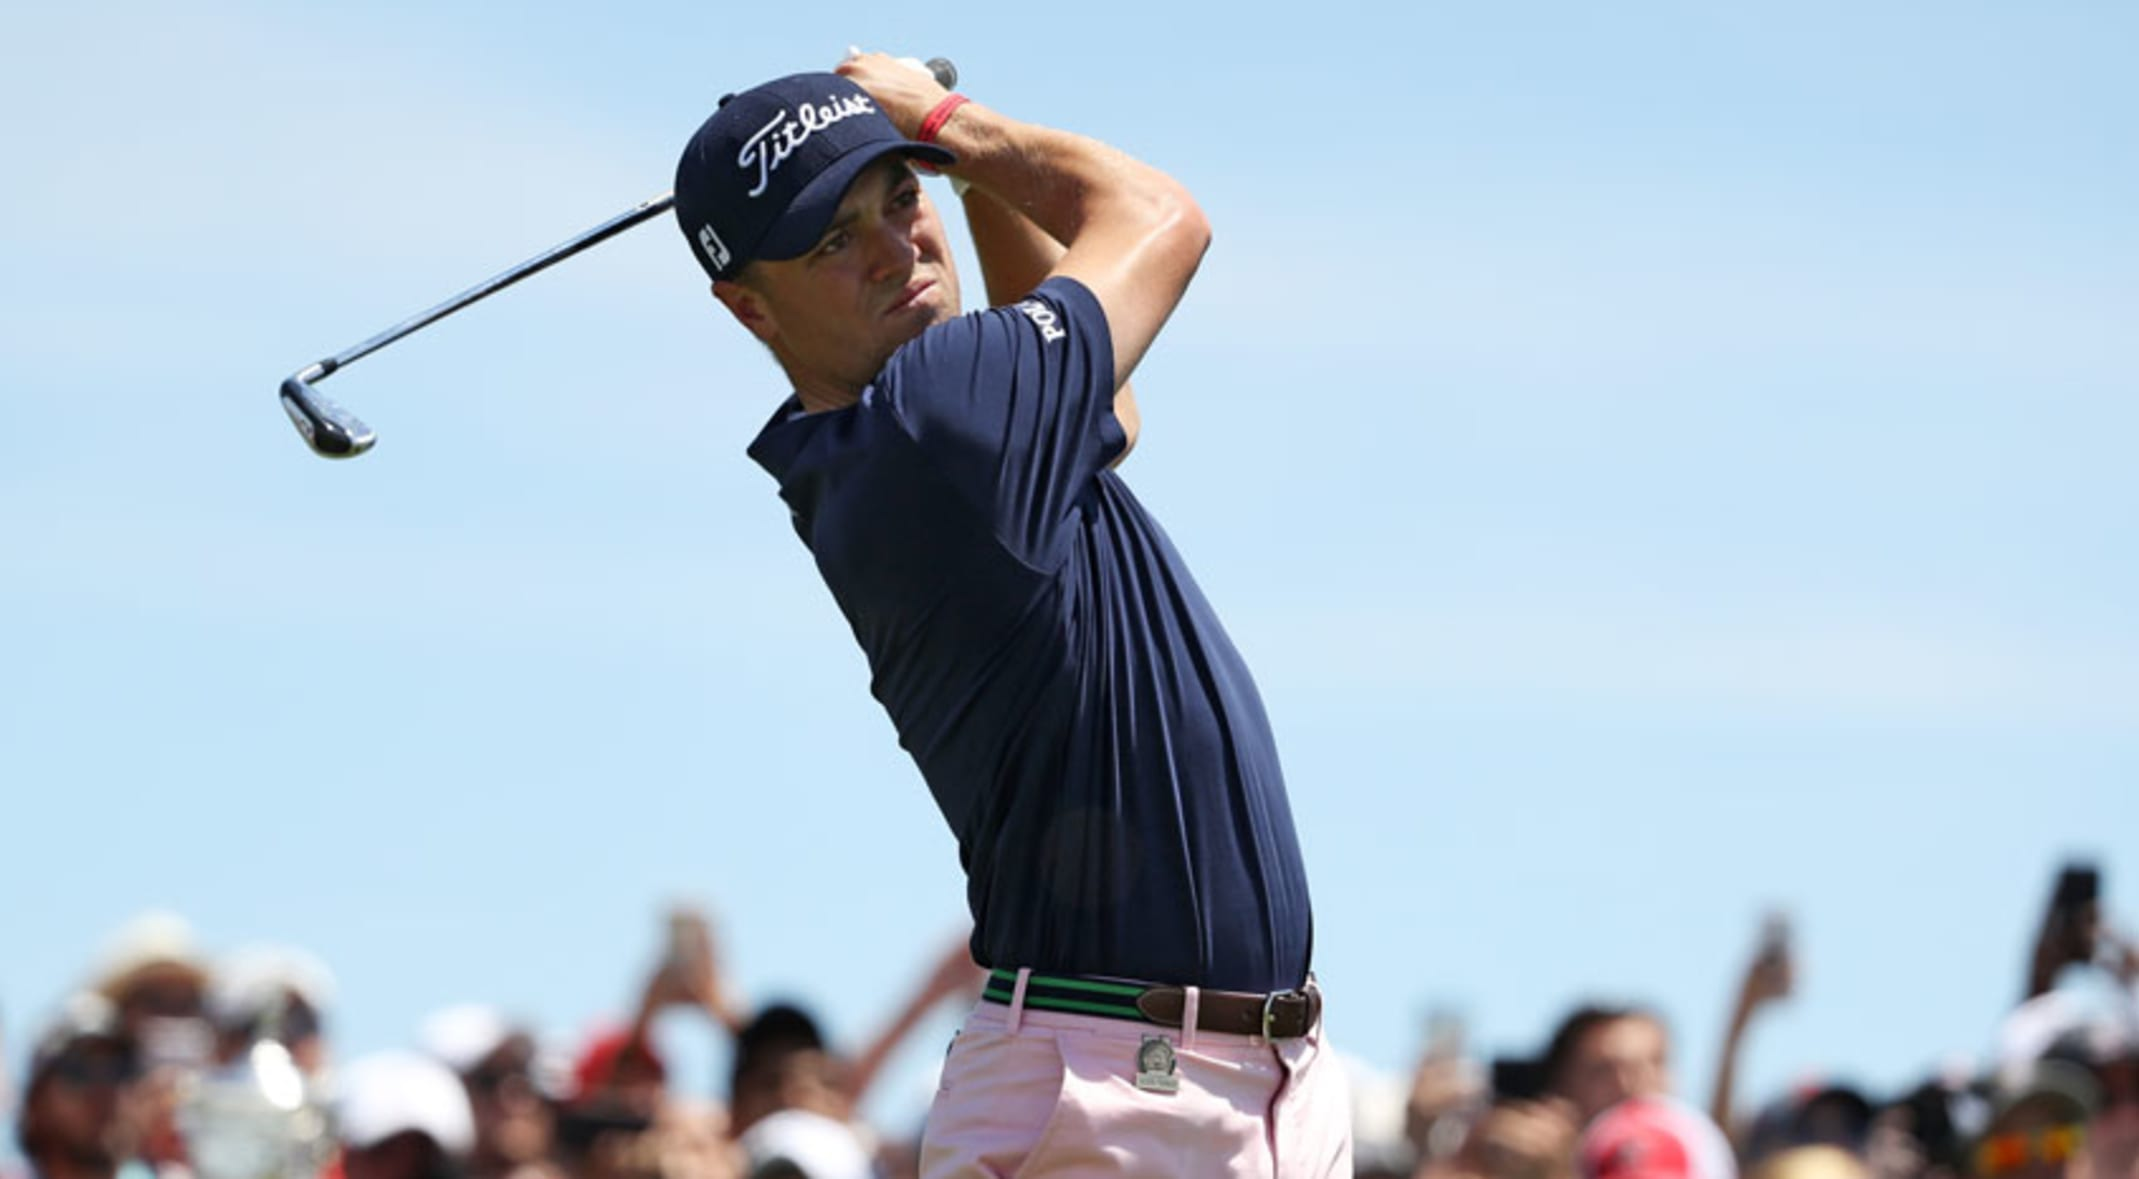 Justin Thomas on his game before Bridgestone